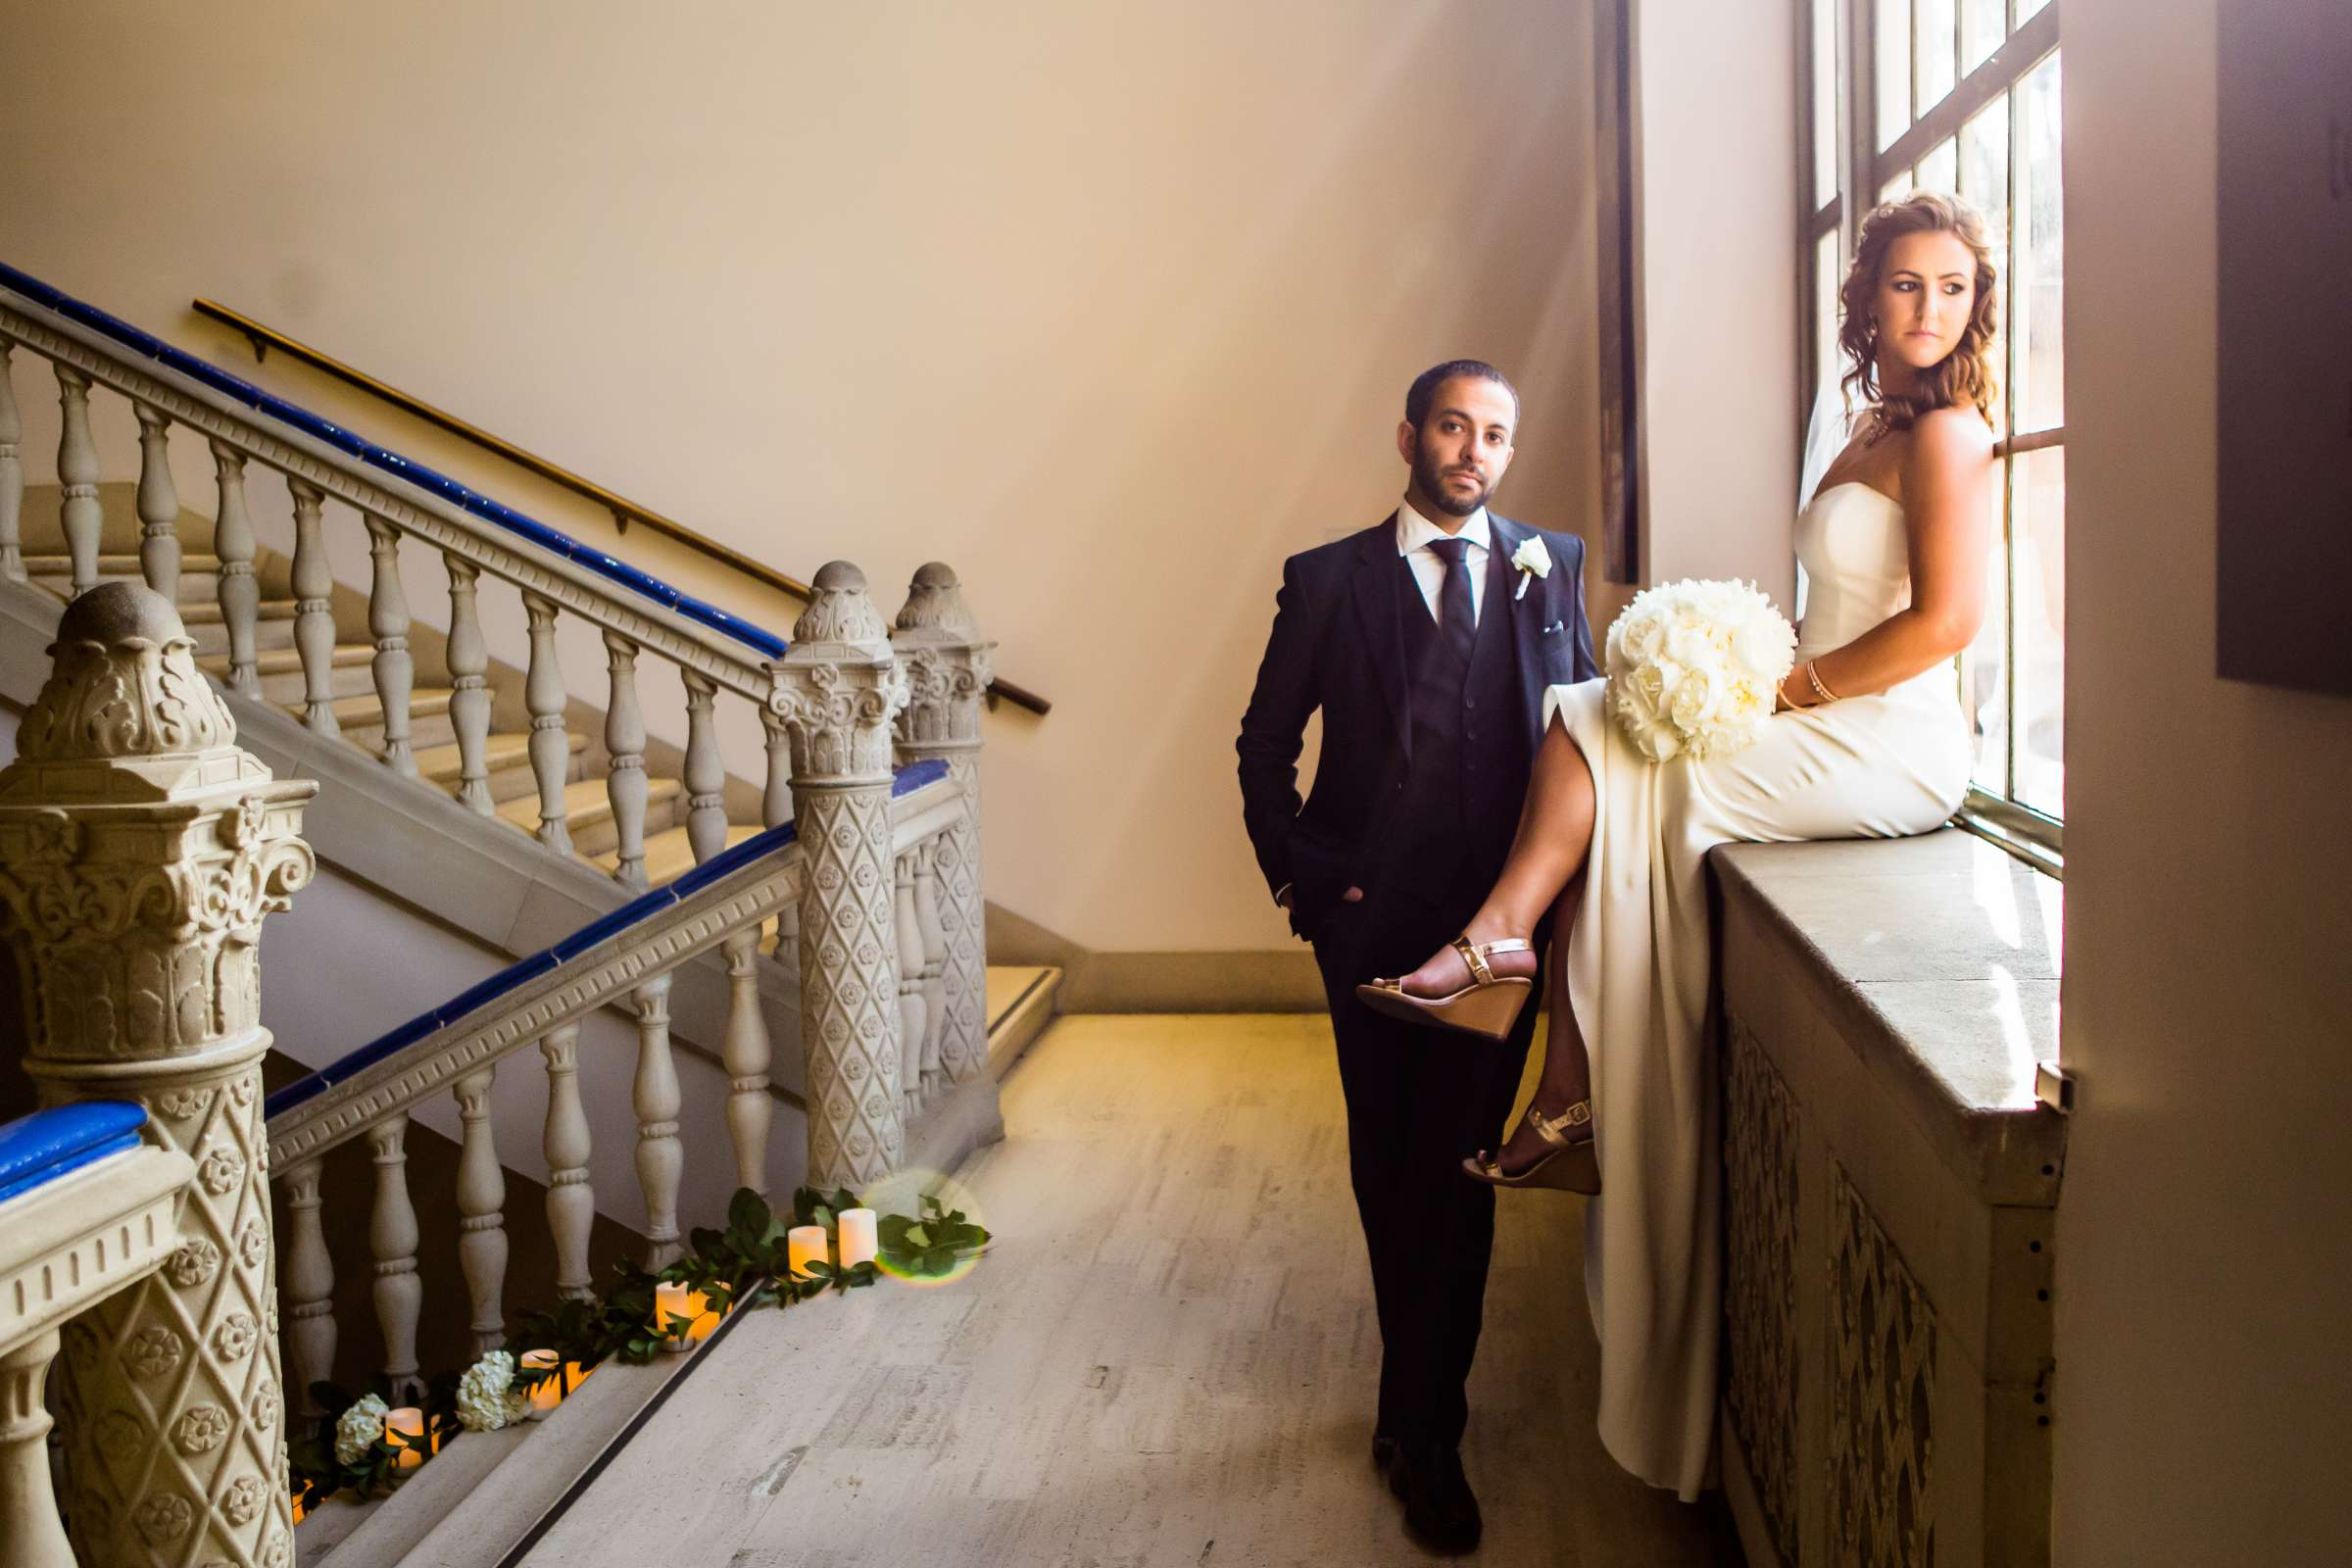 San Diego Museum of Art Wedding coordinated by First Comes Love Weddings & Events, Ruthie and Larry Wedding Photo #236759 by True Photography